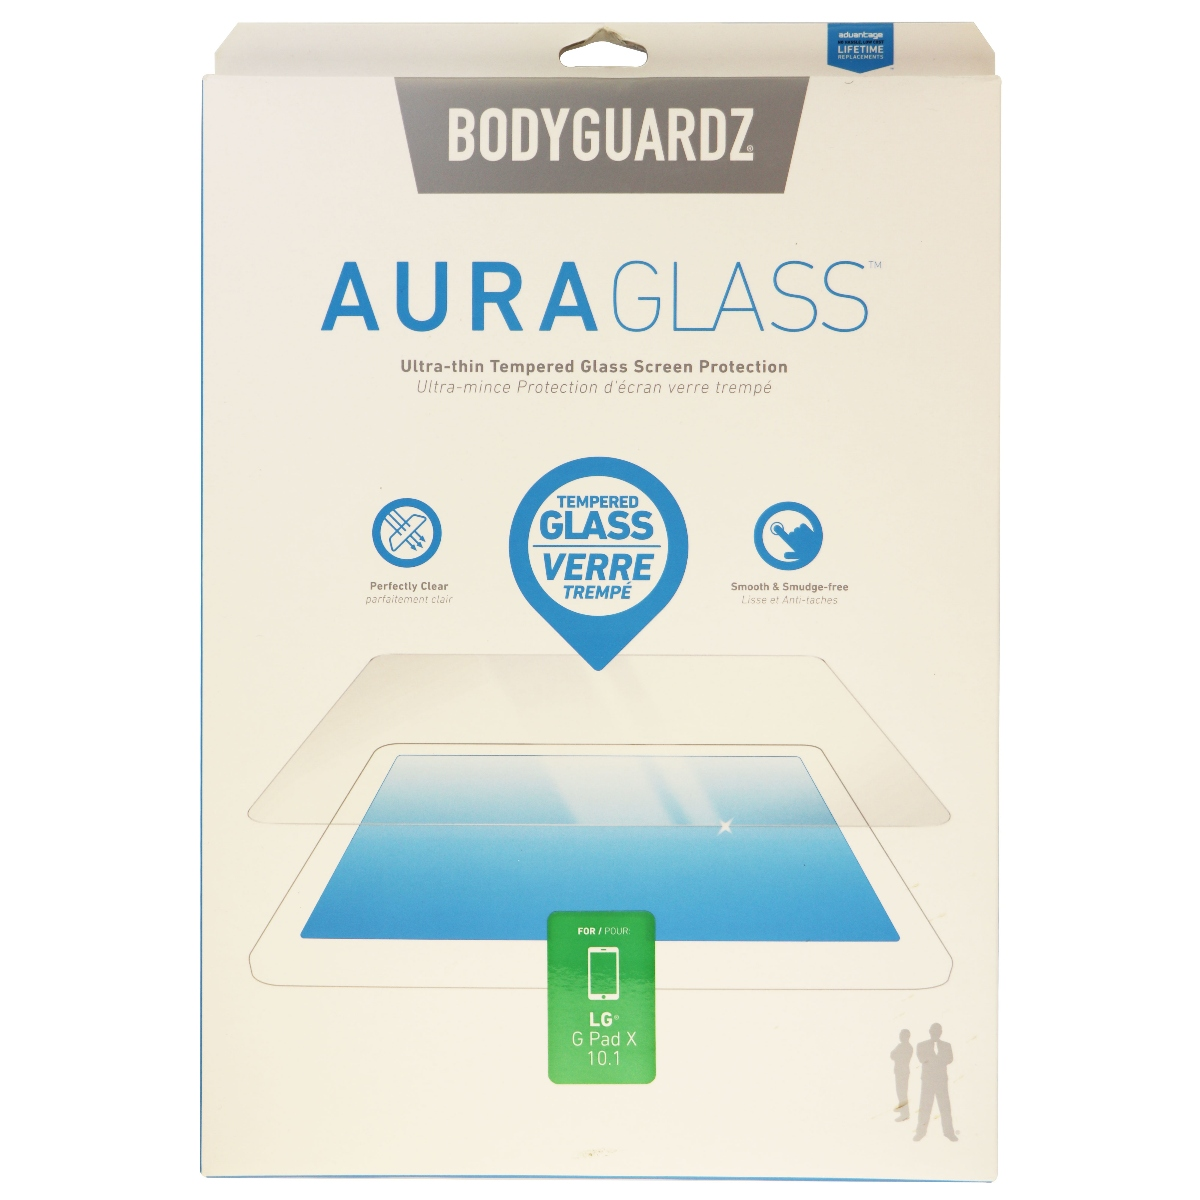 BodyGuardz Aura Glass Tempered Glass Screen Protector for LG G Pad X 10.1 Clear